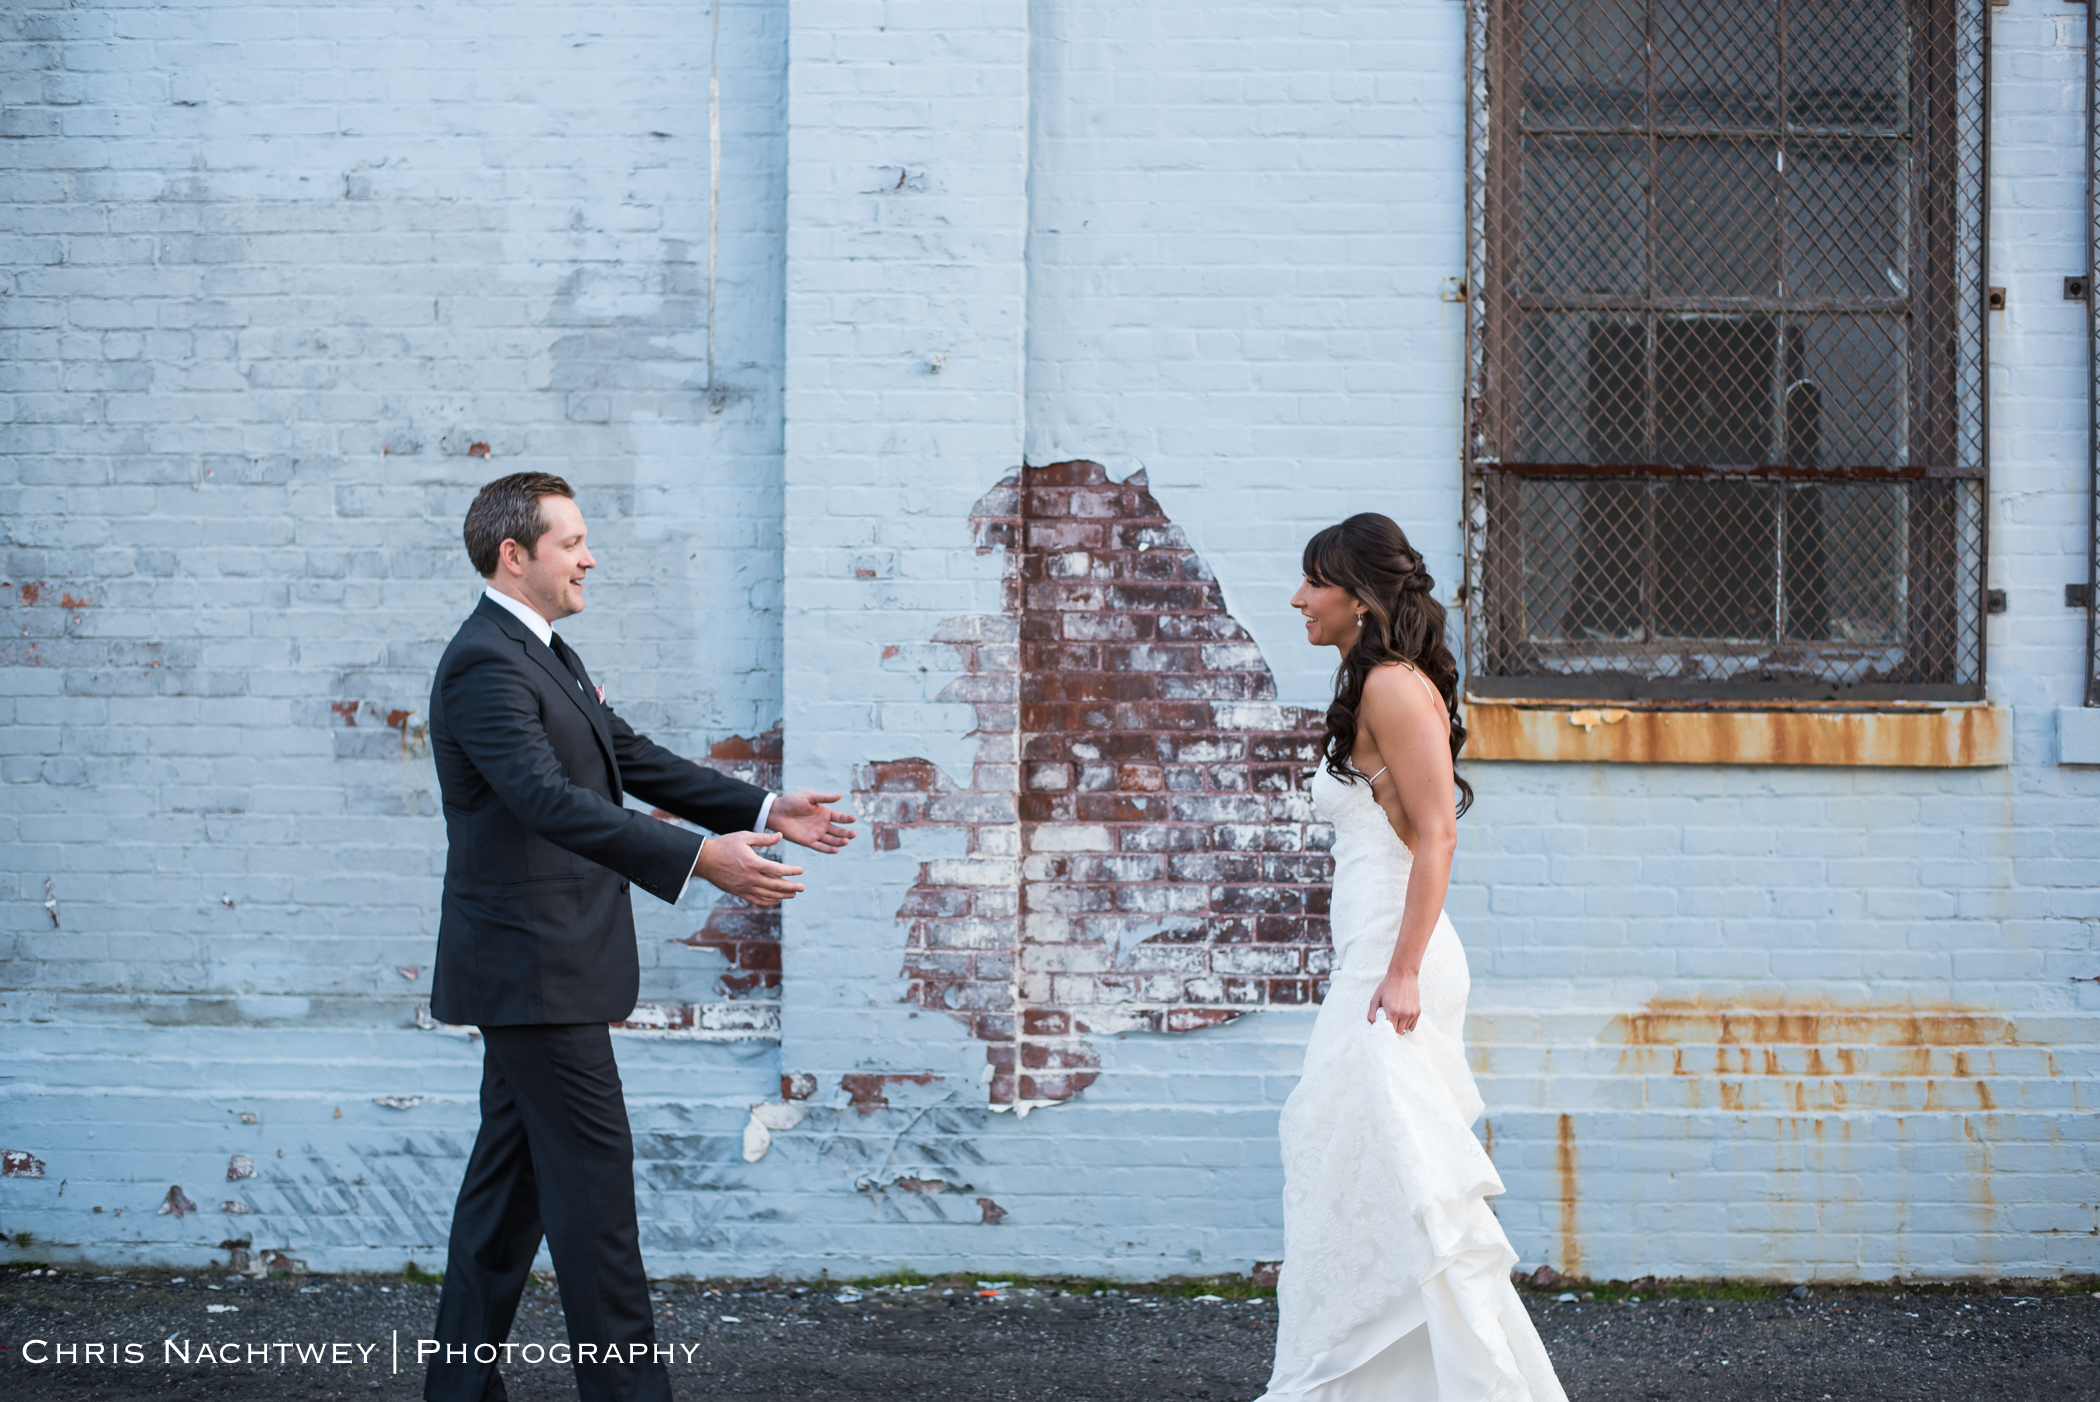 the-loading-dock-wedding-photography-stamford-ct-chris-nachtwey-5.jpg